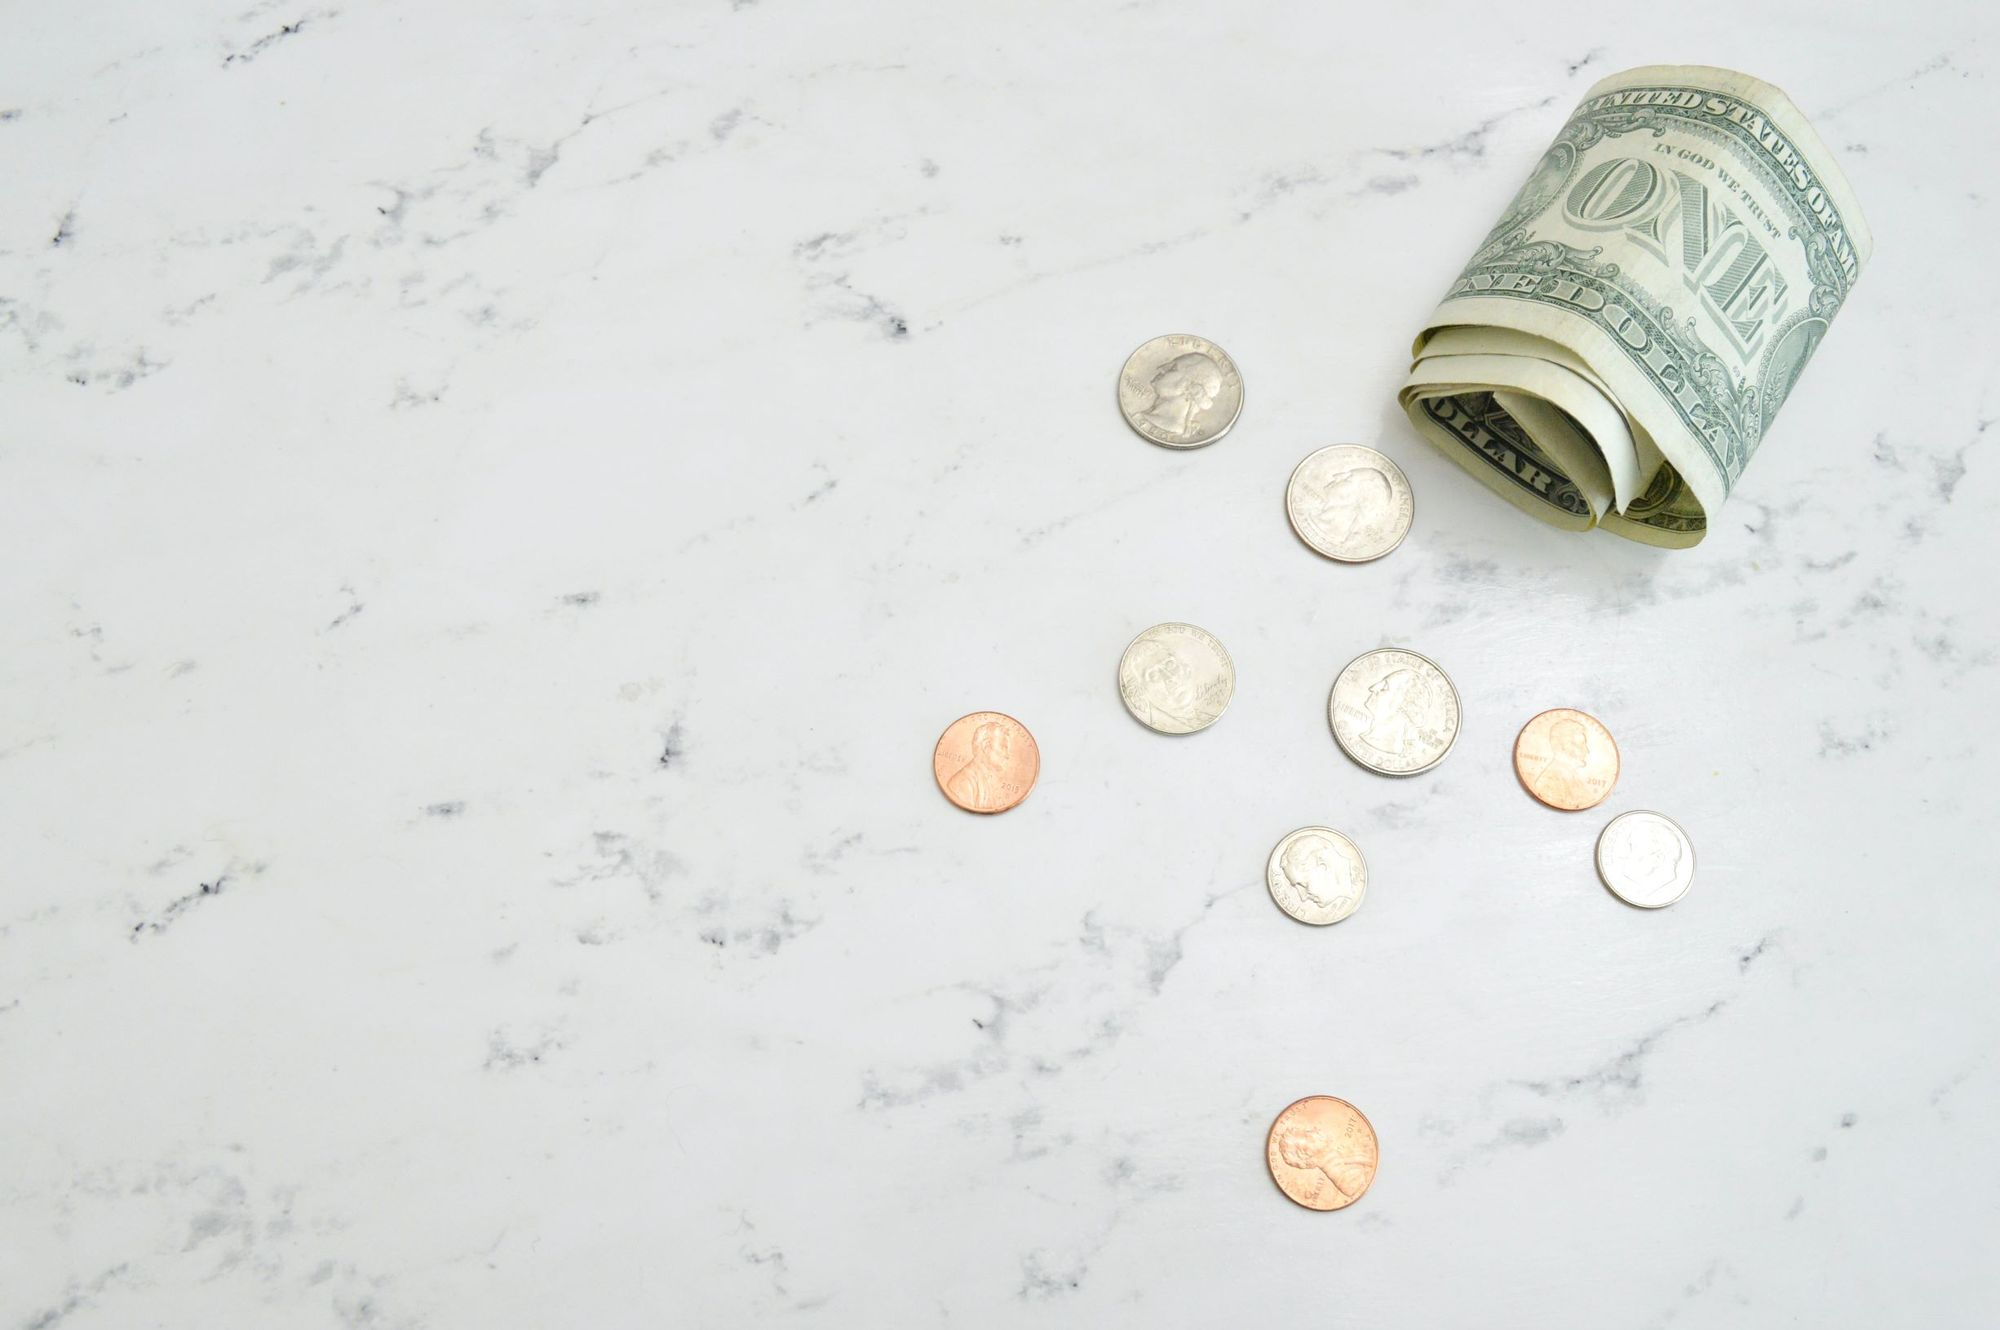 Photo of money being lost due to low insurance